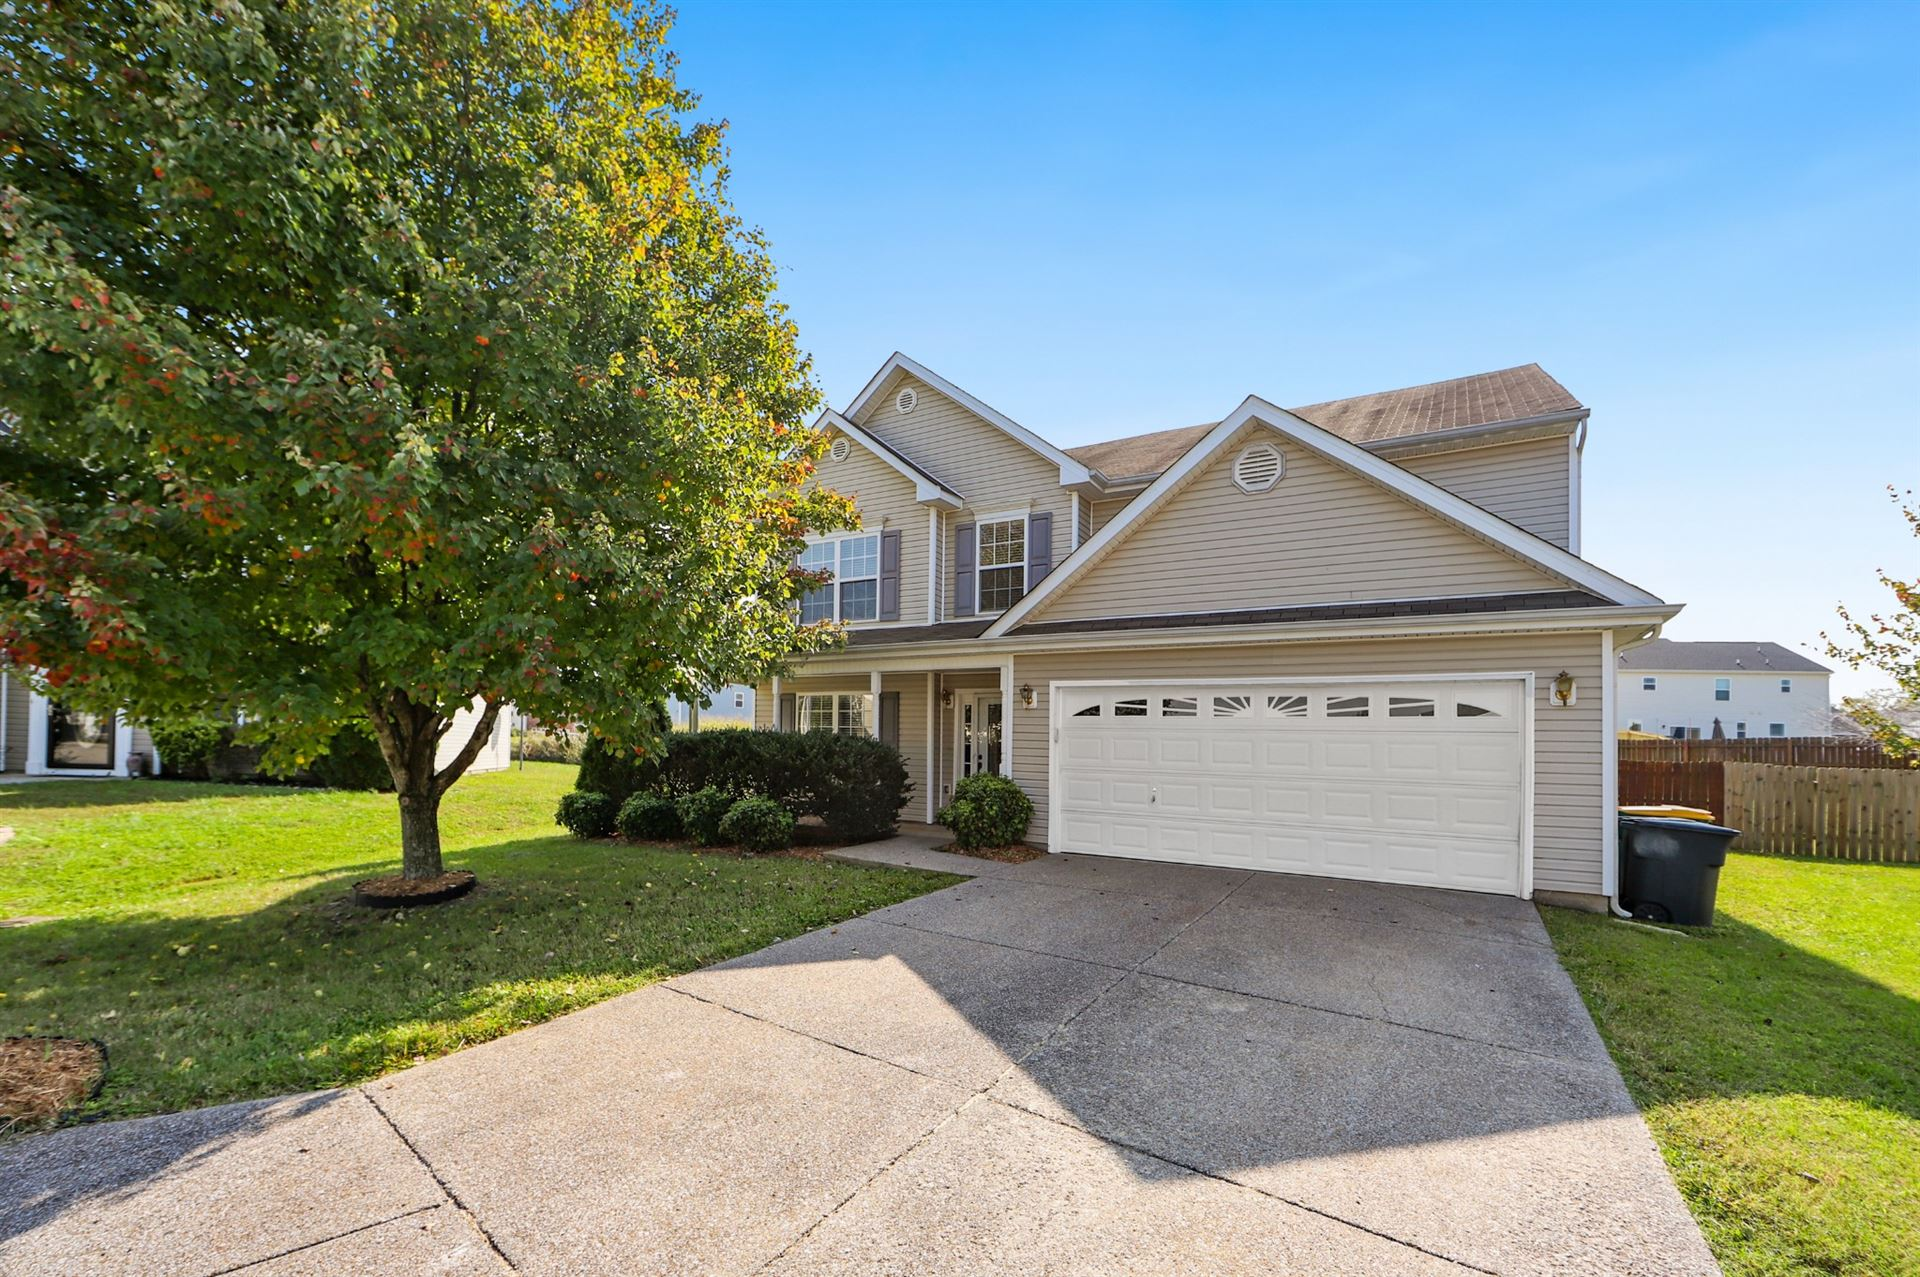 Photo of 2005 Cadence Ct, Spring Hill, TN 37174 (MLS # 2199622)